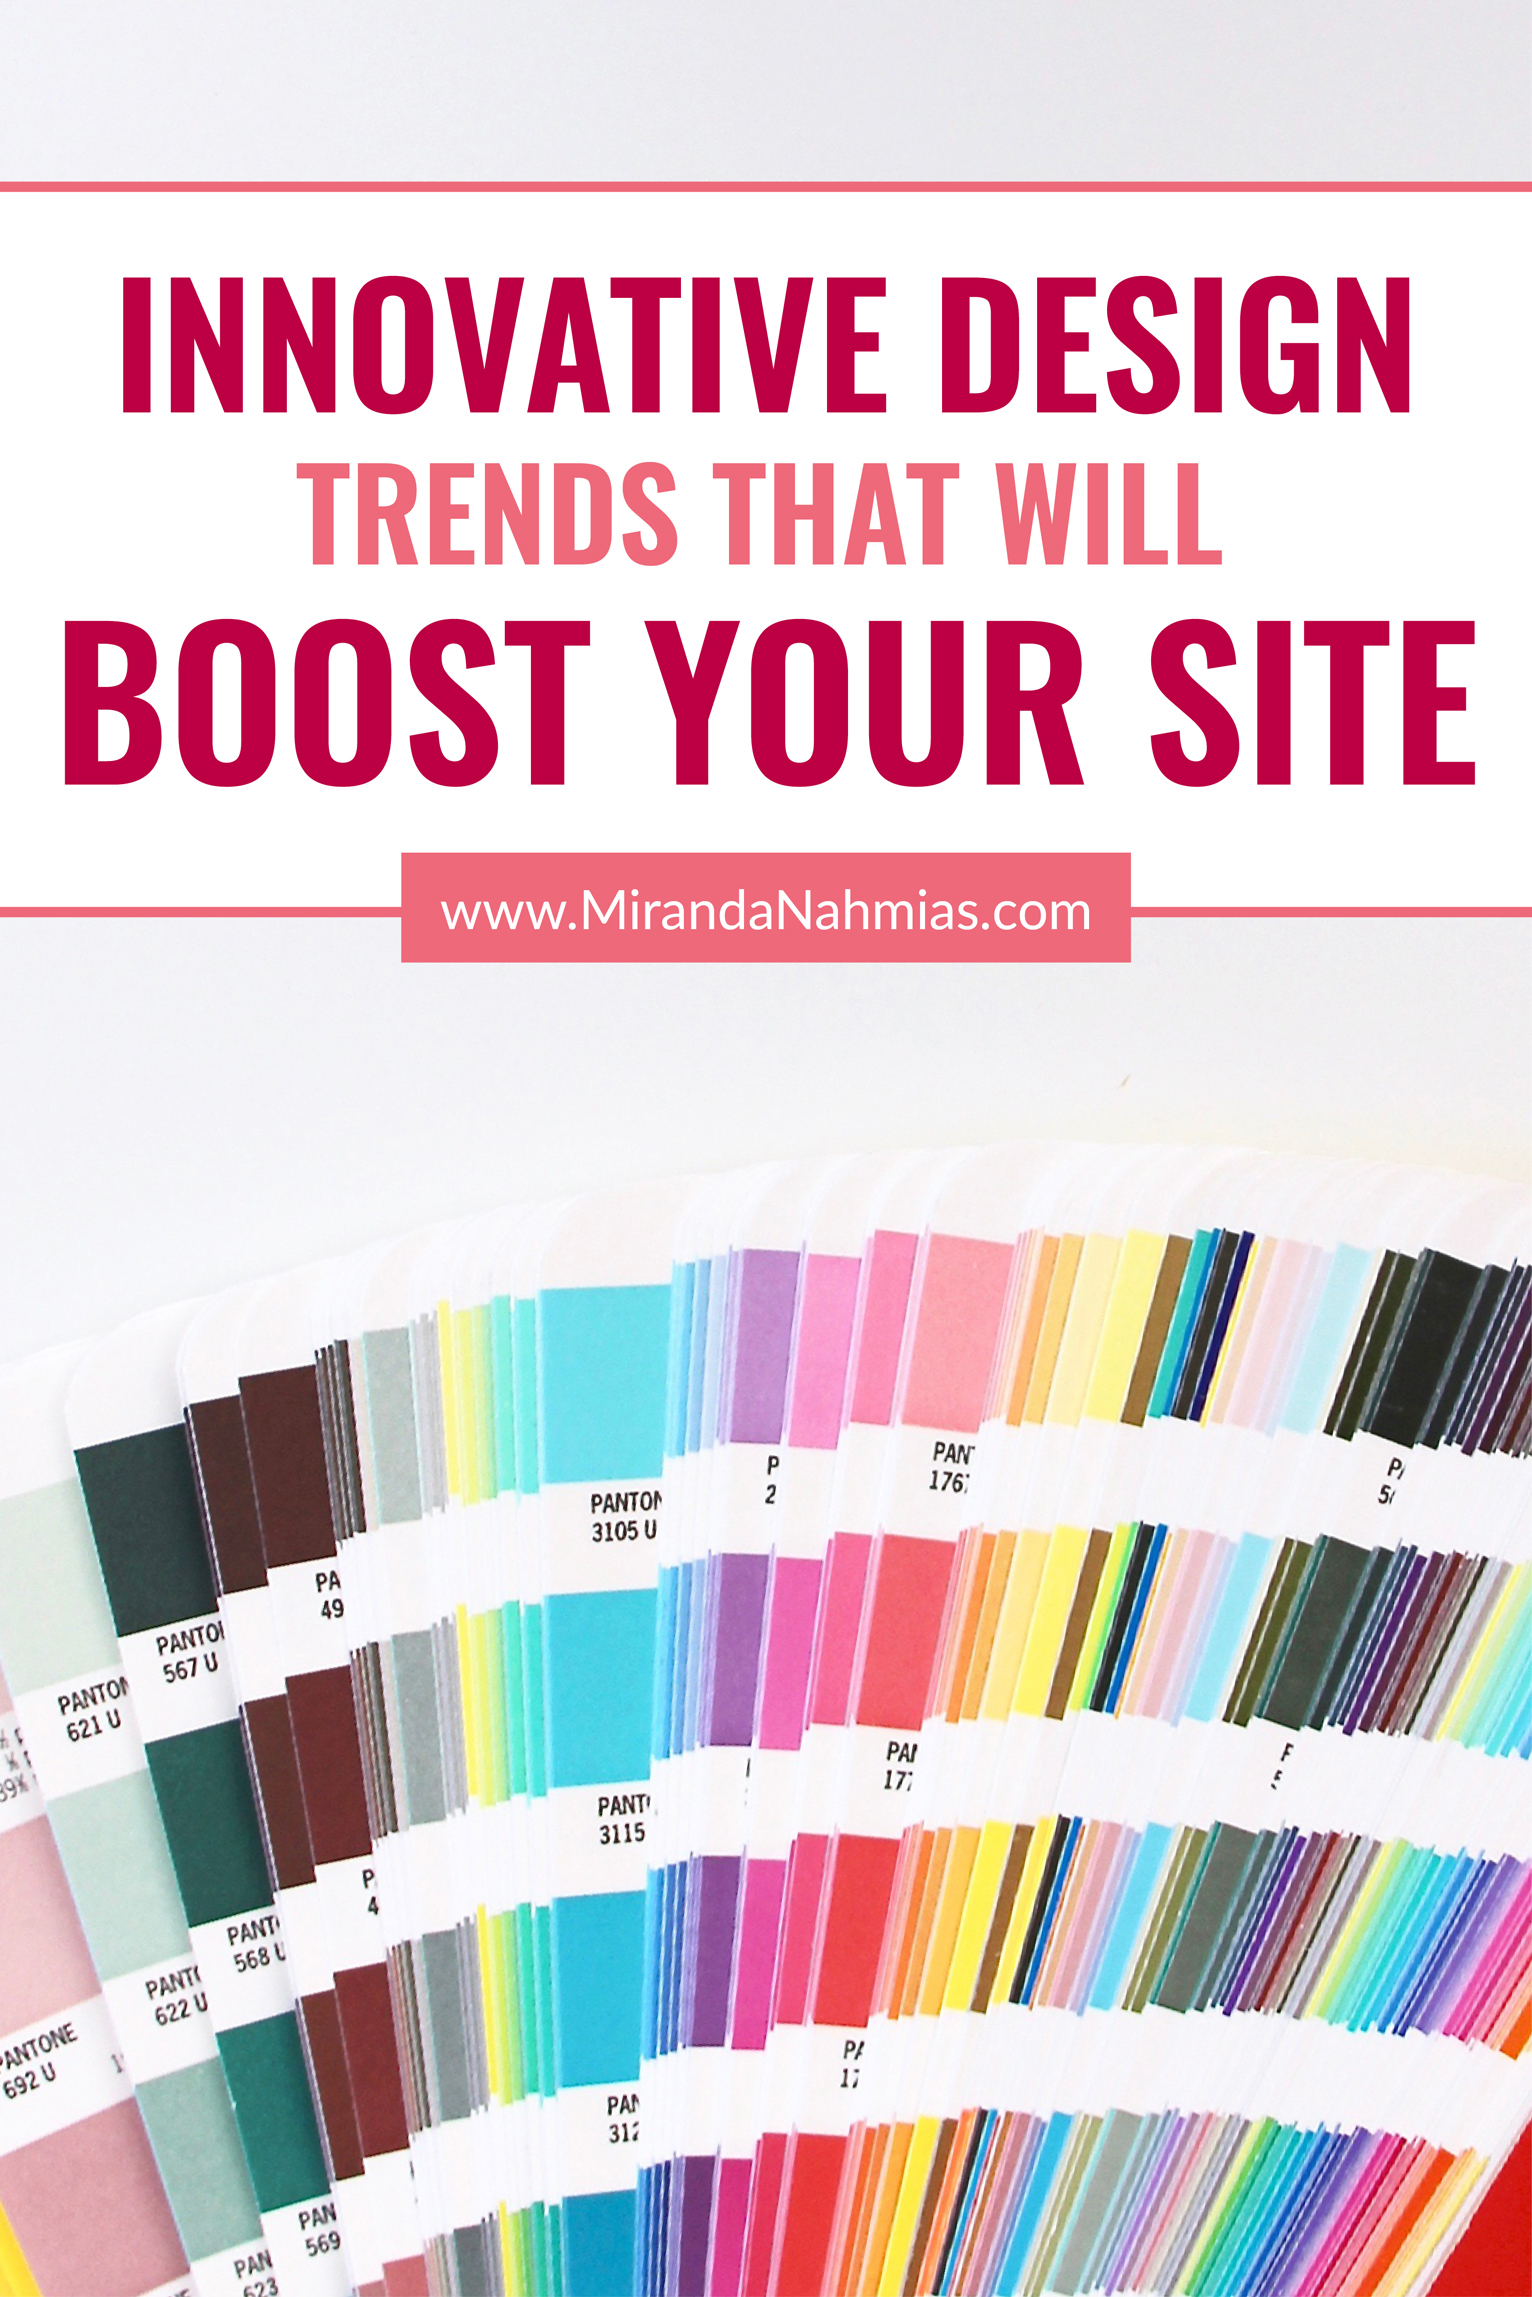 Innovative Design Trends That Will Boost Your Site! via www.mirandanahmias.com